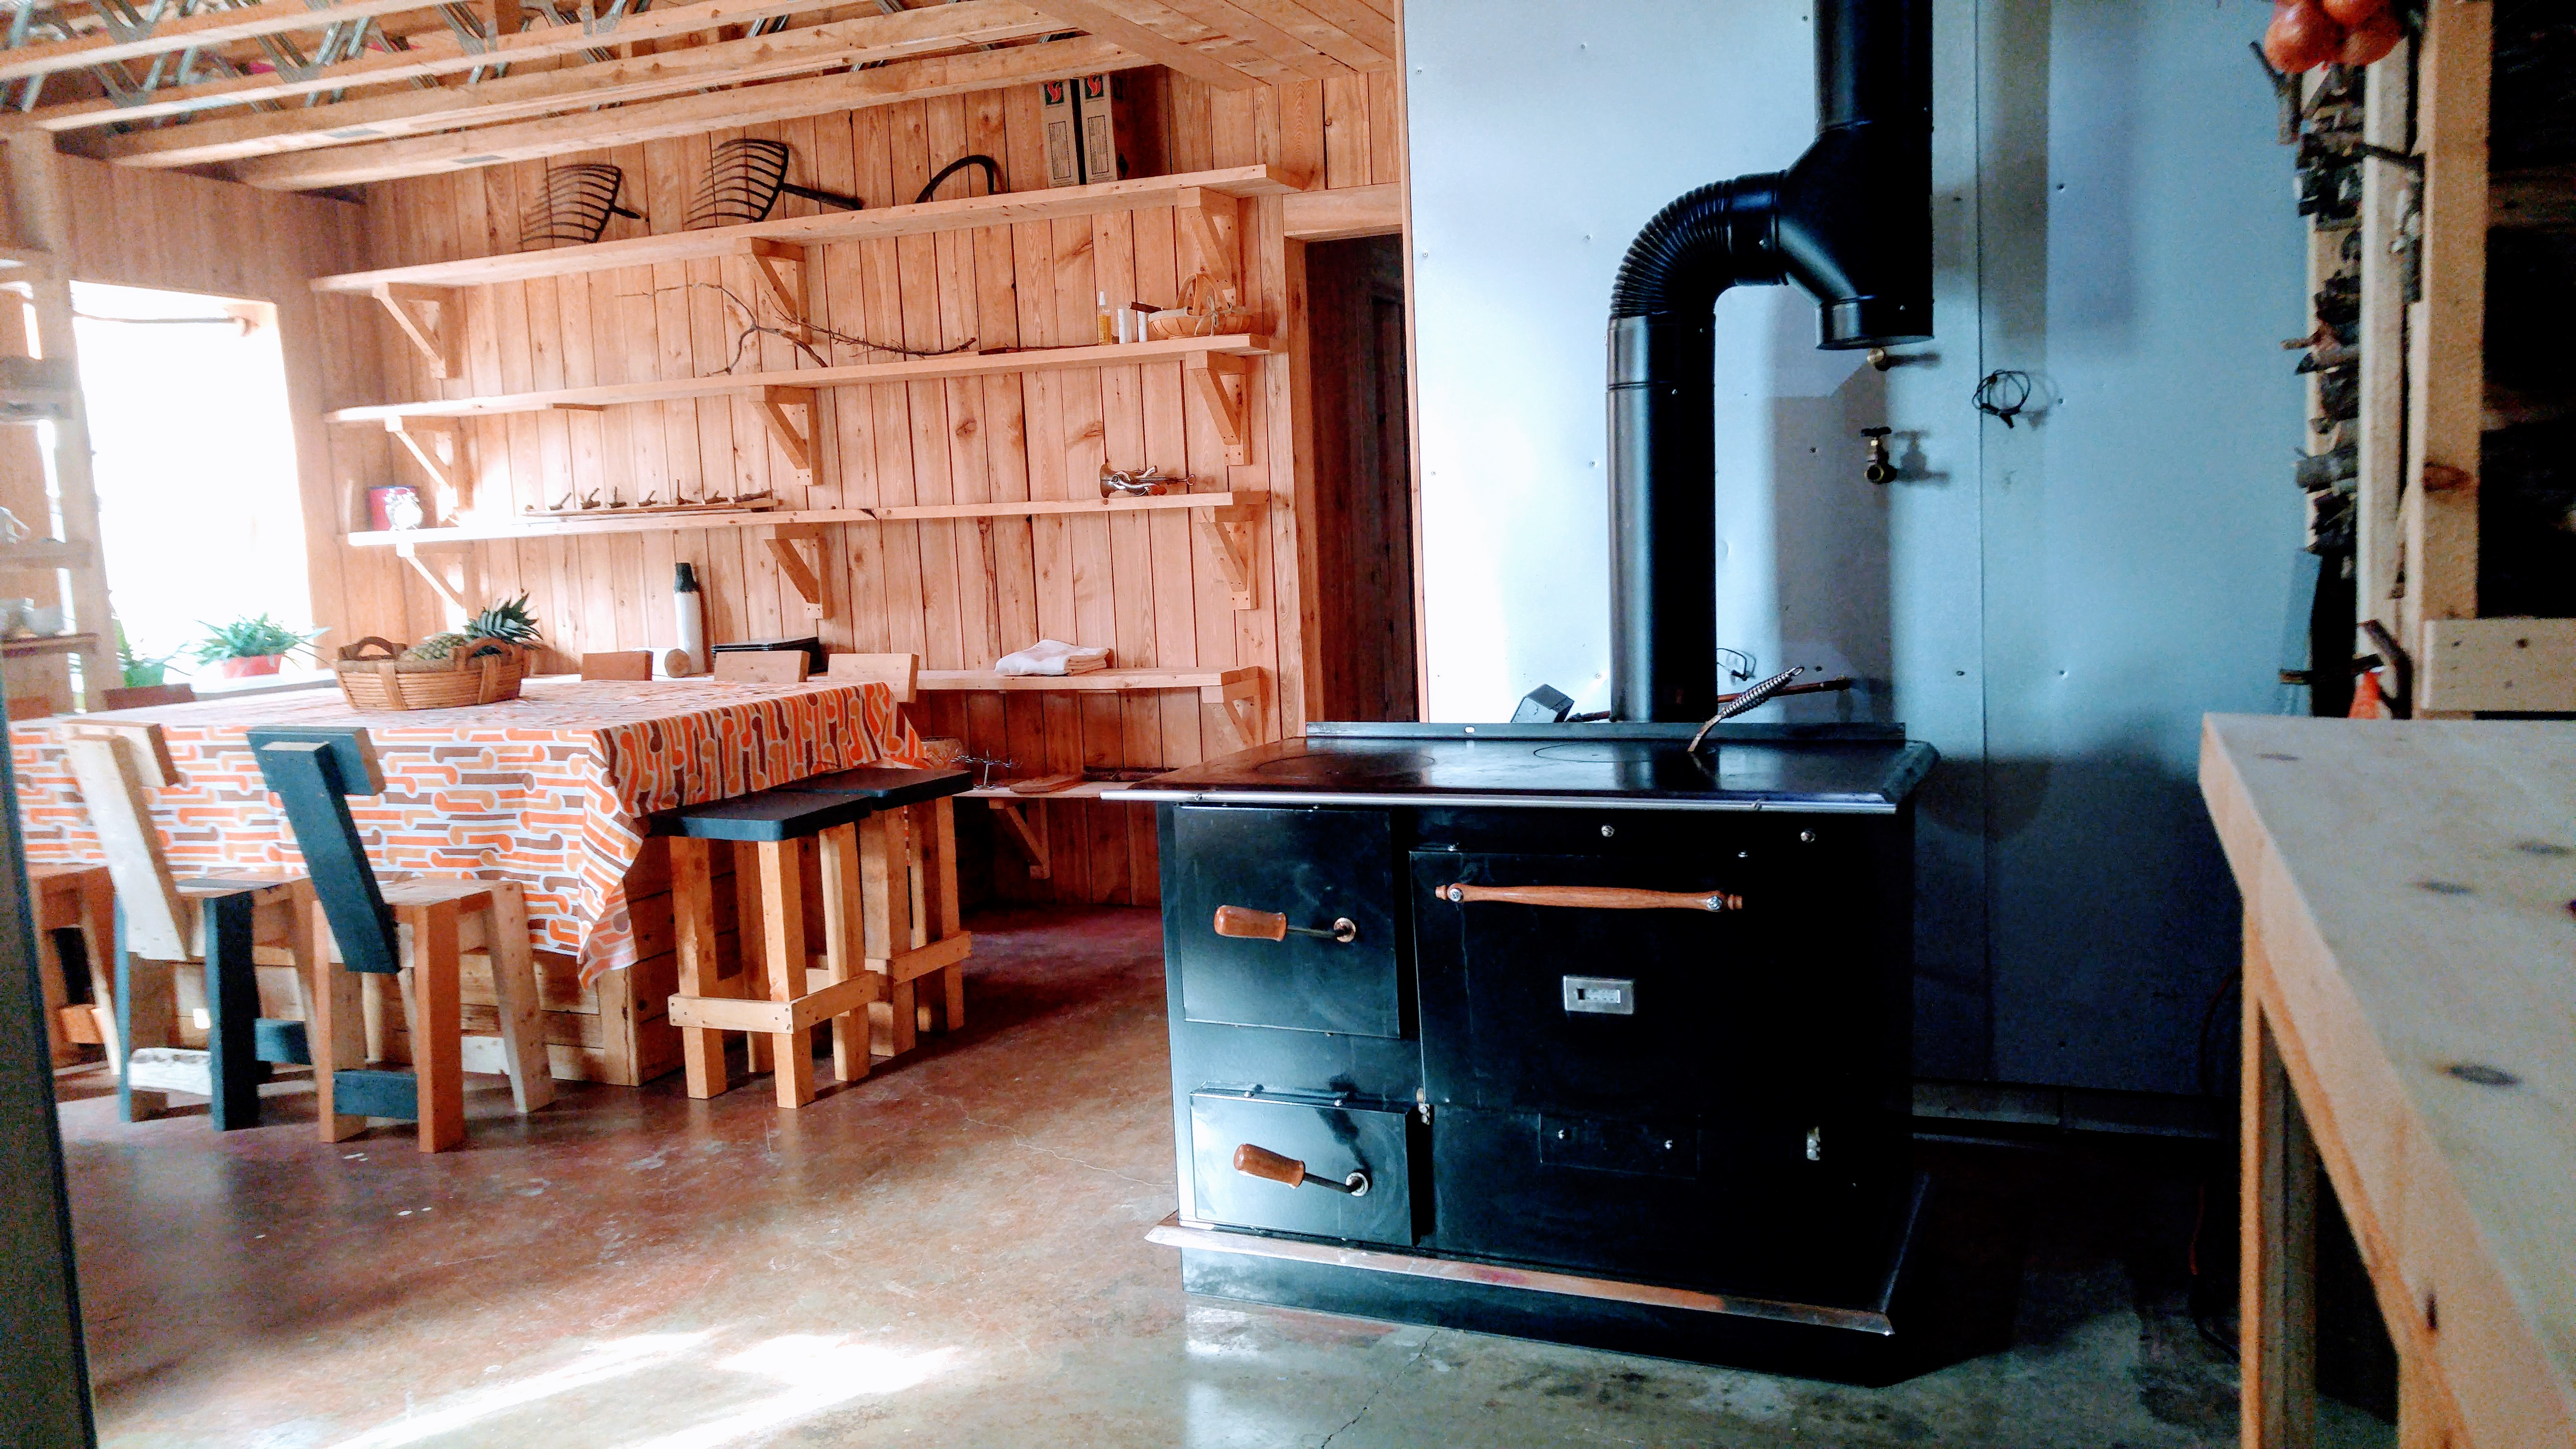 Amish Wood-fired stove